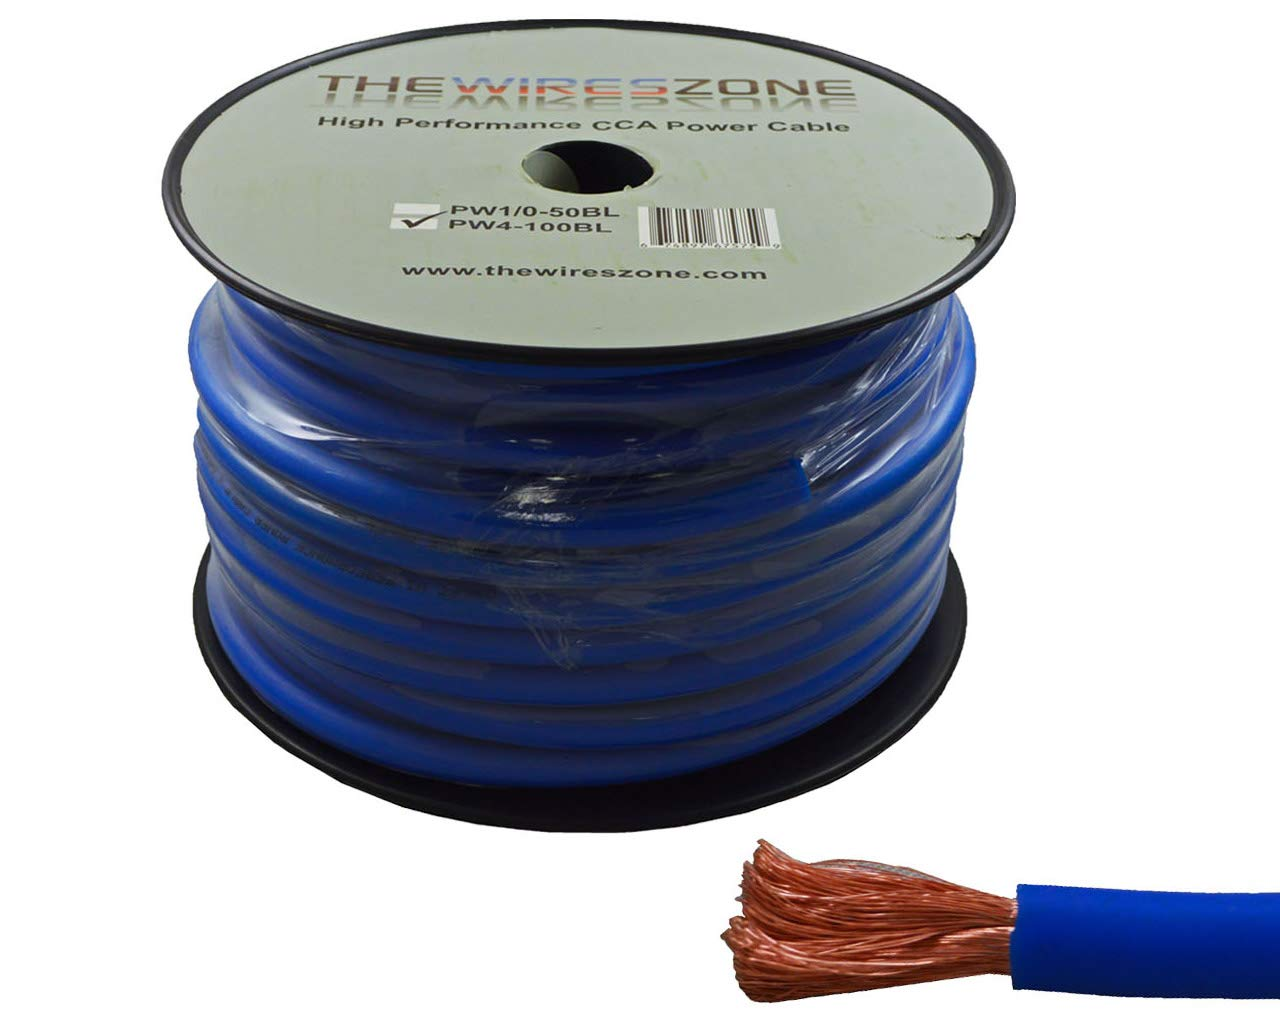 4 Gauge 100 Feet Wire High Performance Flexible Amp Power Ground Cable 4 AWG (Blue) by The Wires Zone